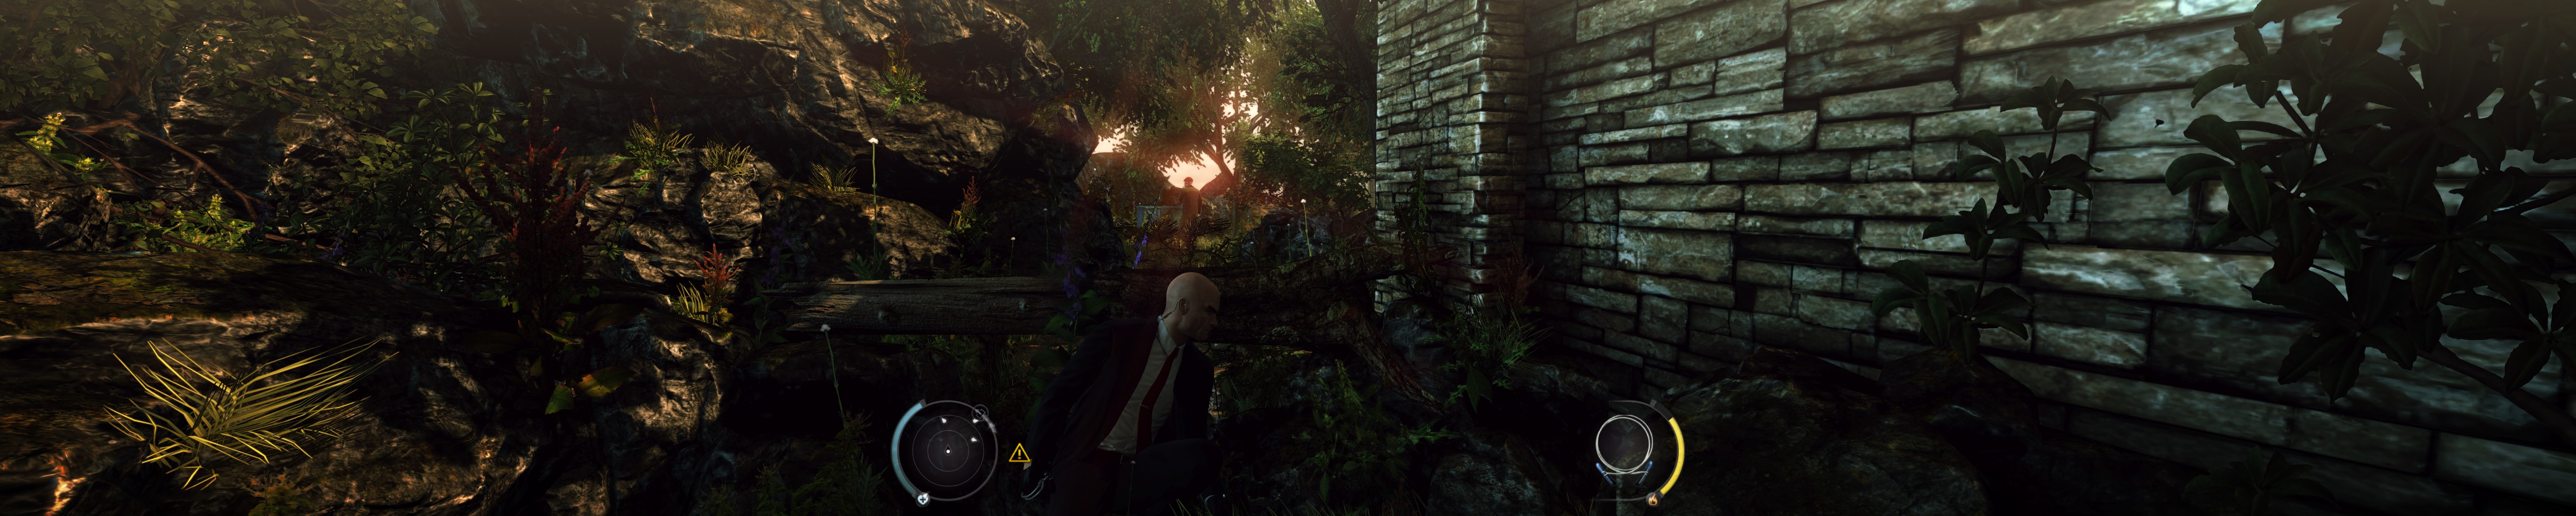 hitman_absolution_2013-05-17_00001